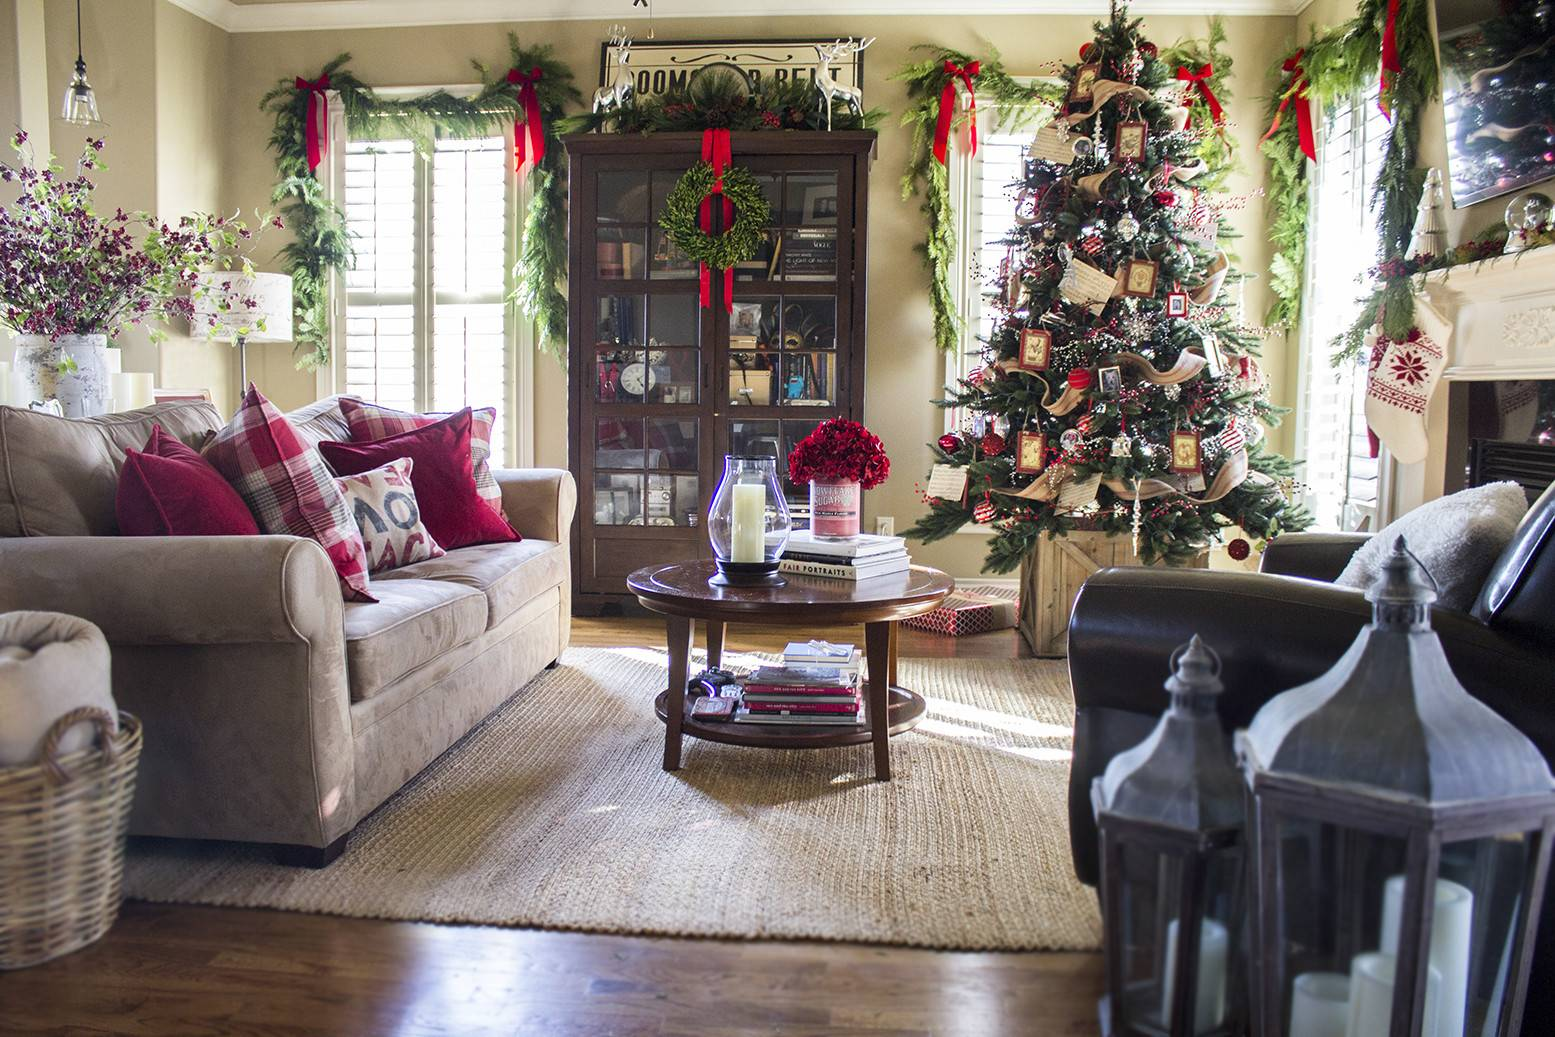 Holiday Home Tour Classic Christmas Decor